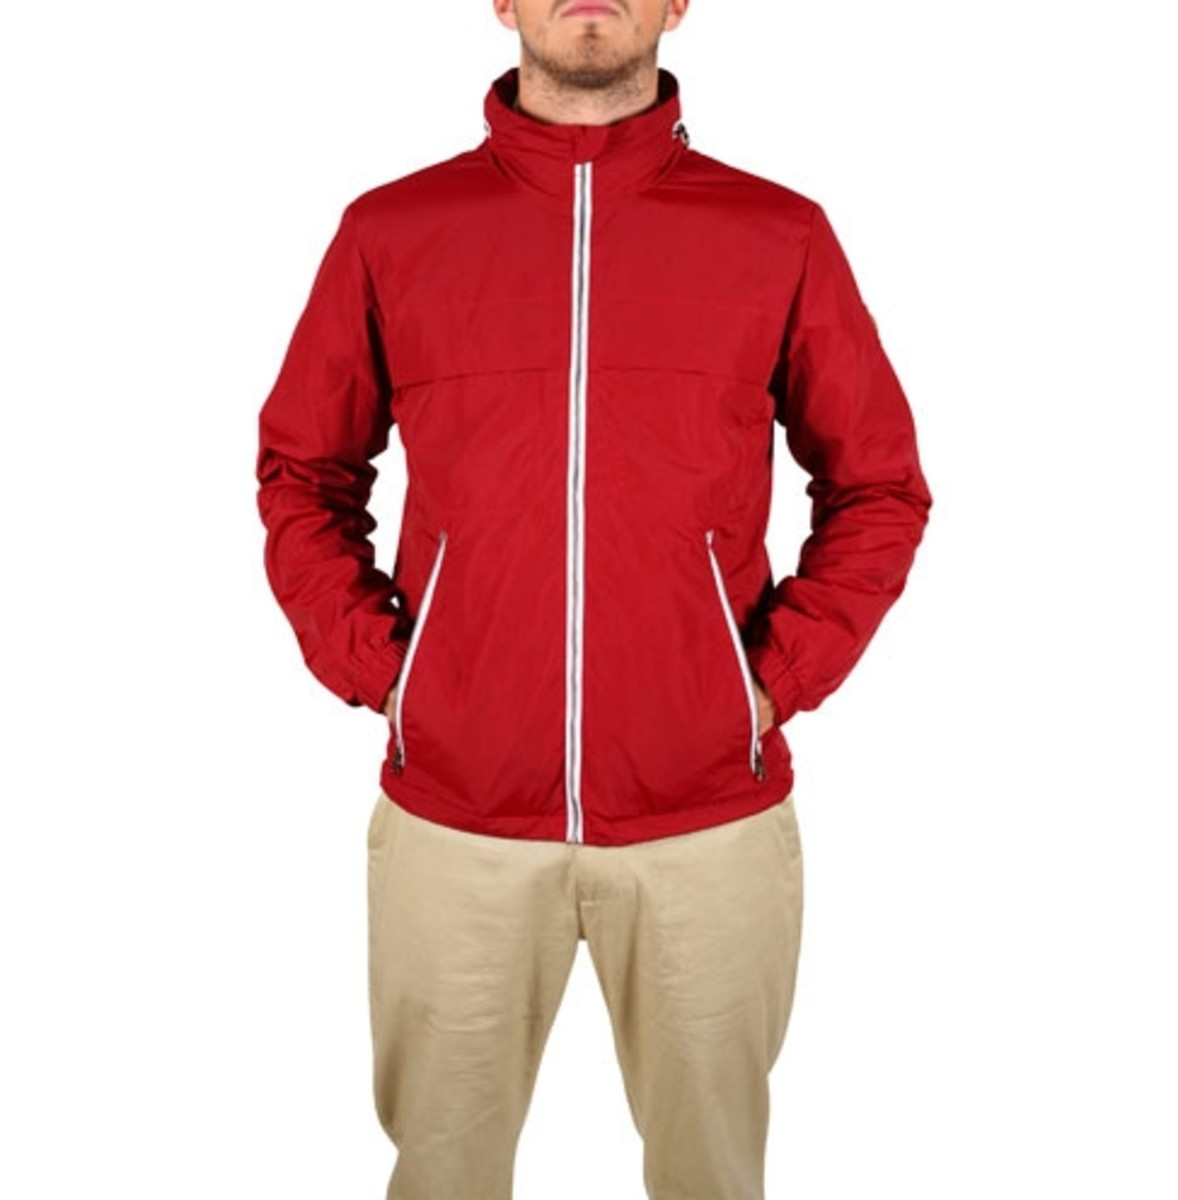 Penfield SS2011 Jackets 39